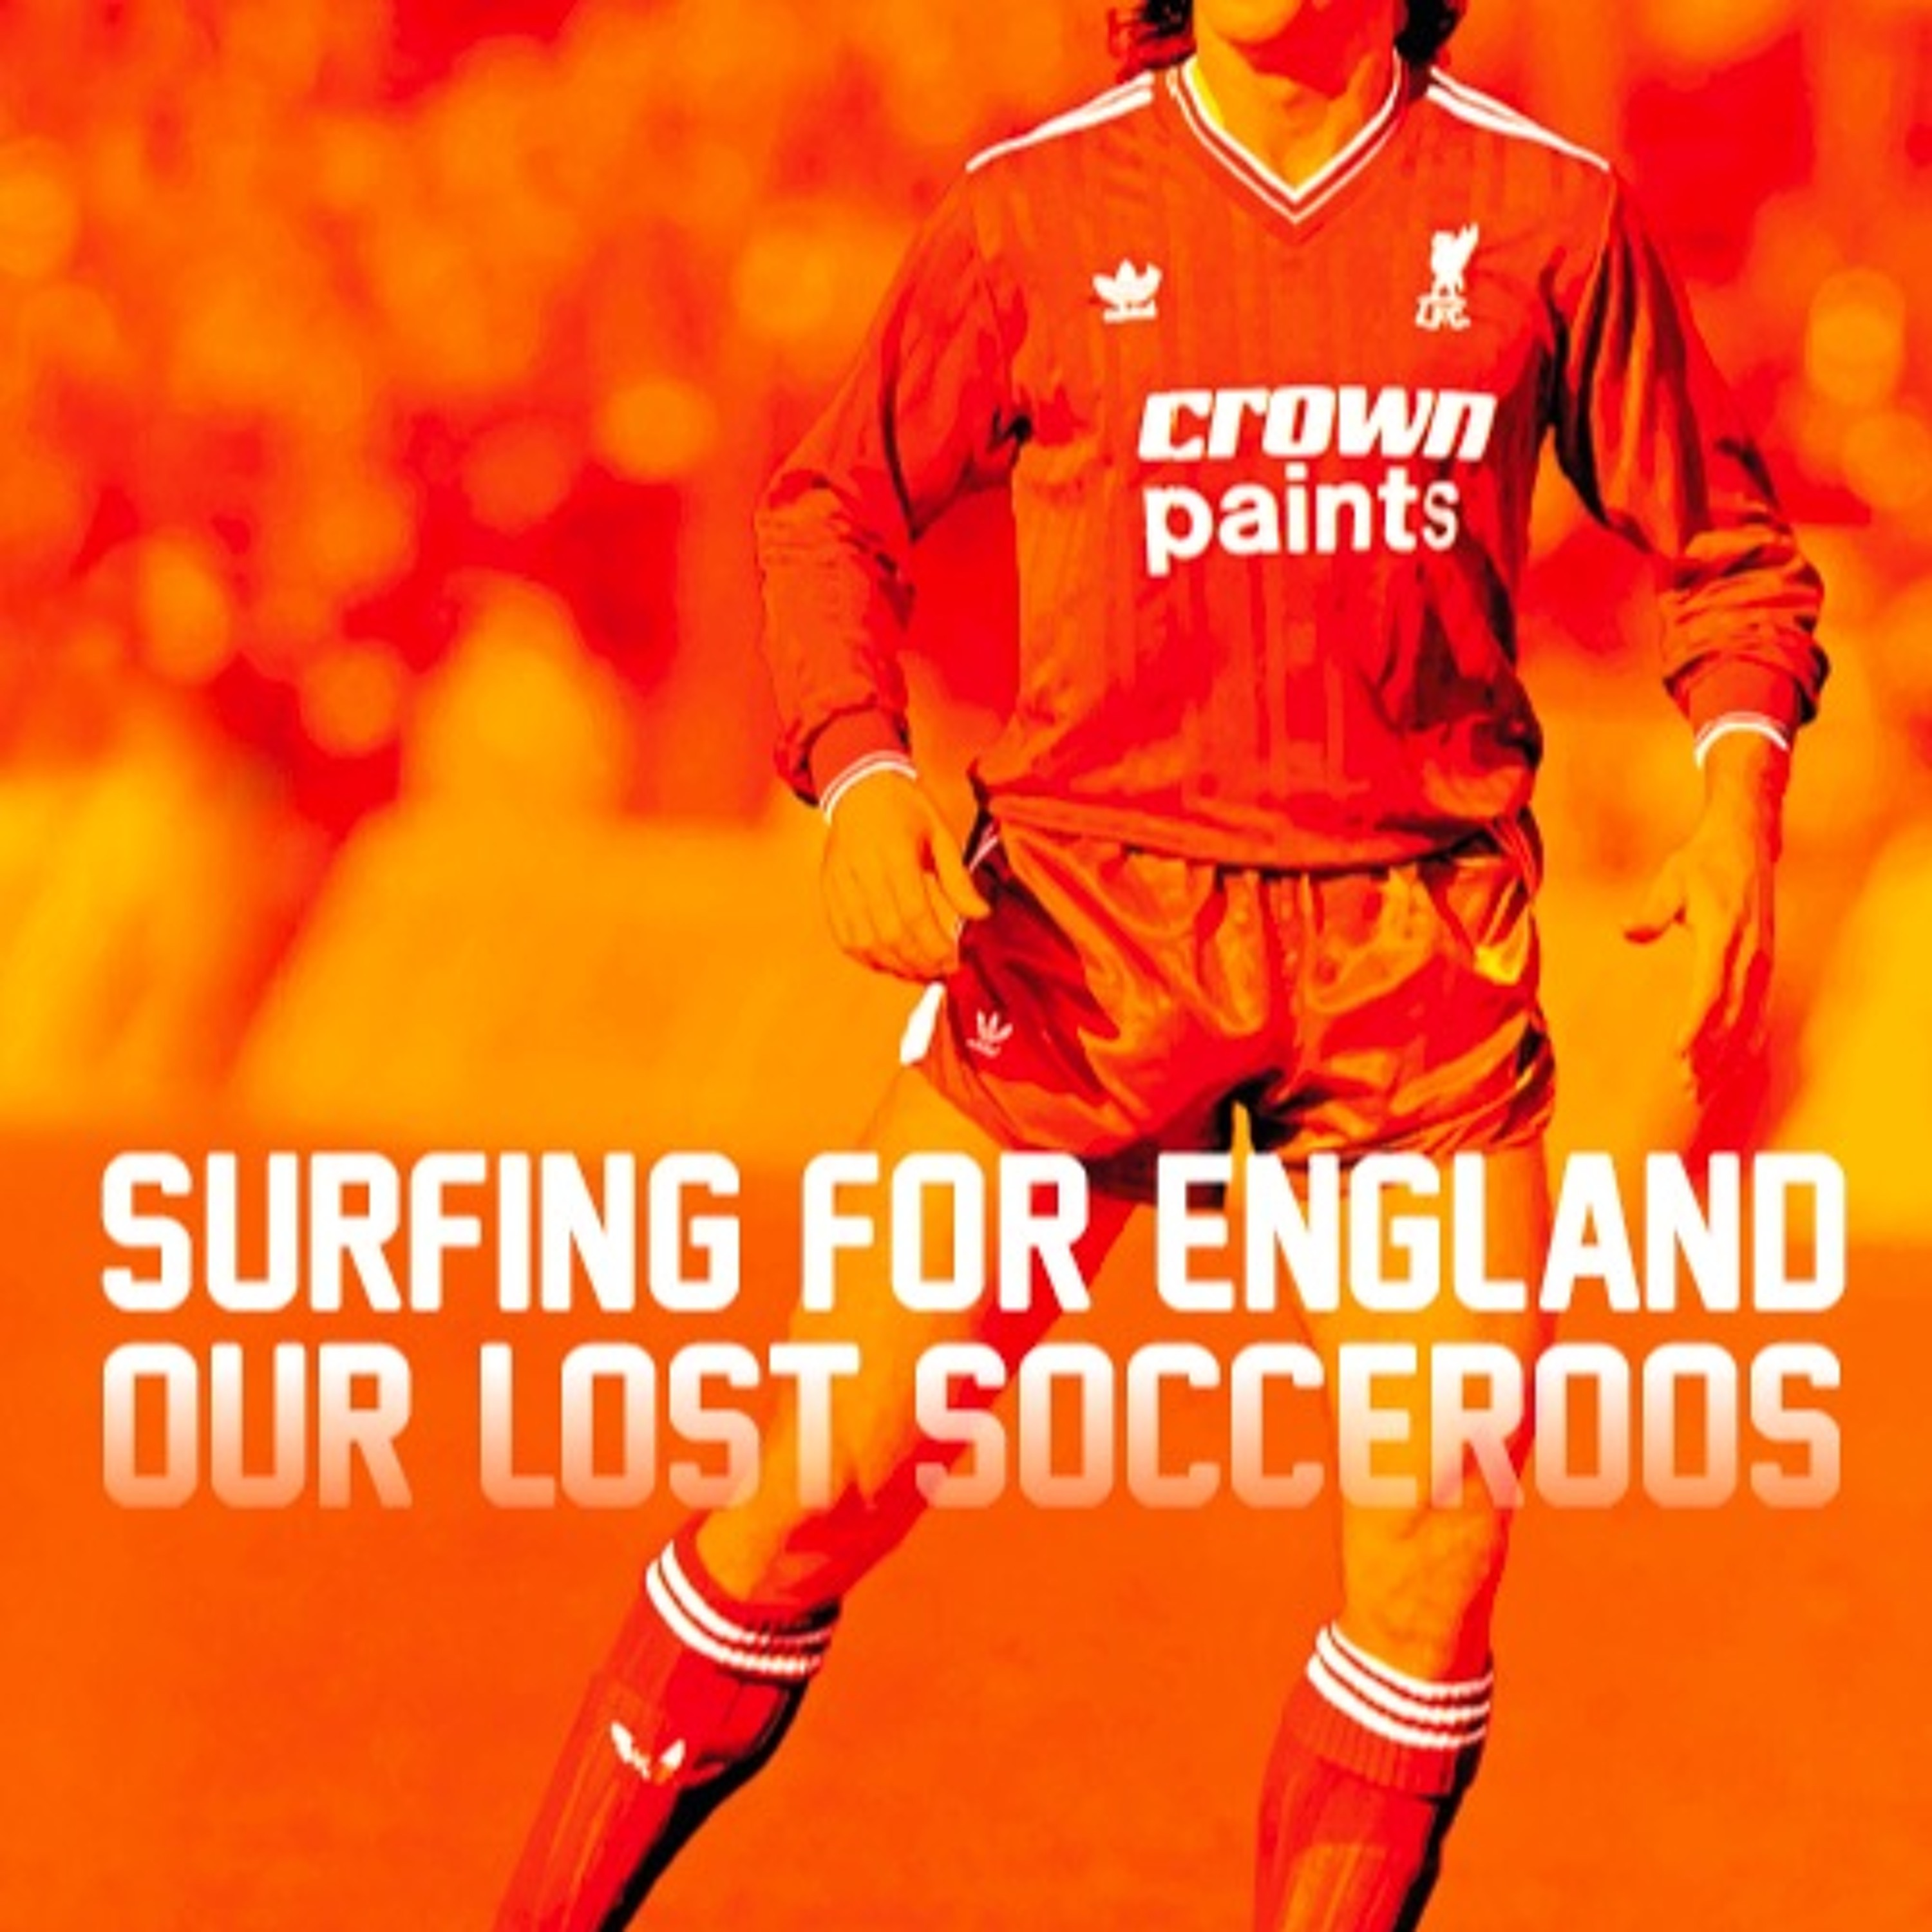 Jason Goldsmith on 'Surfing for England - Our Lost Socceroos'